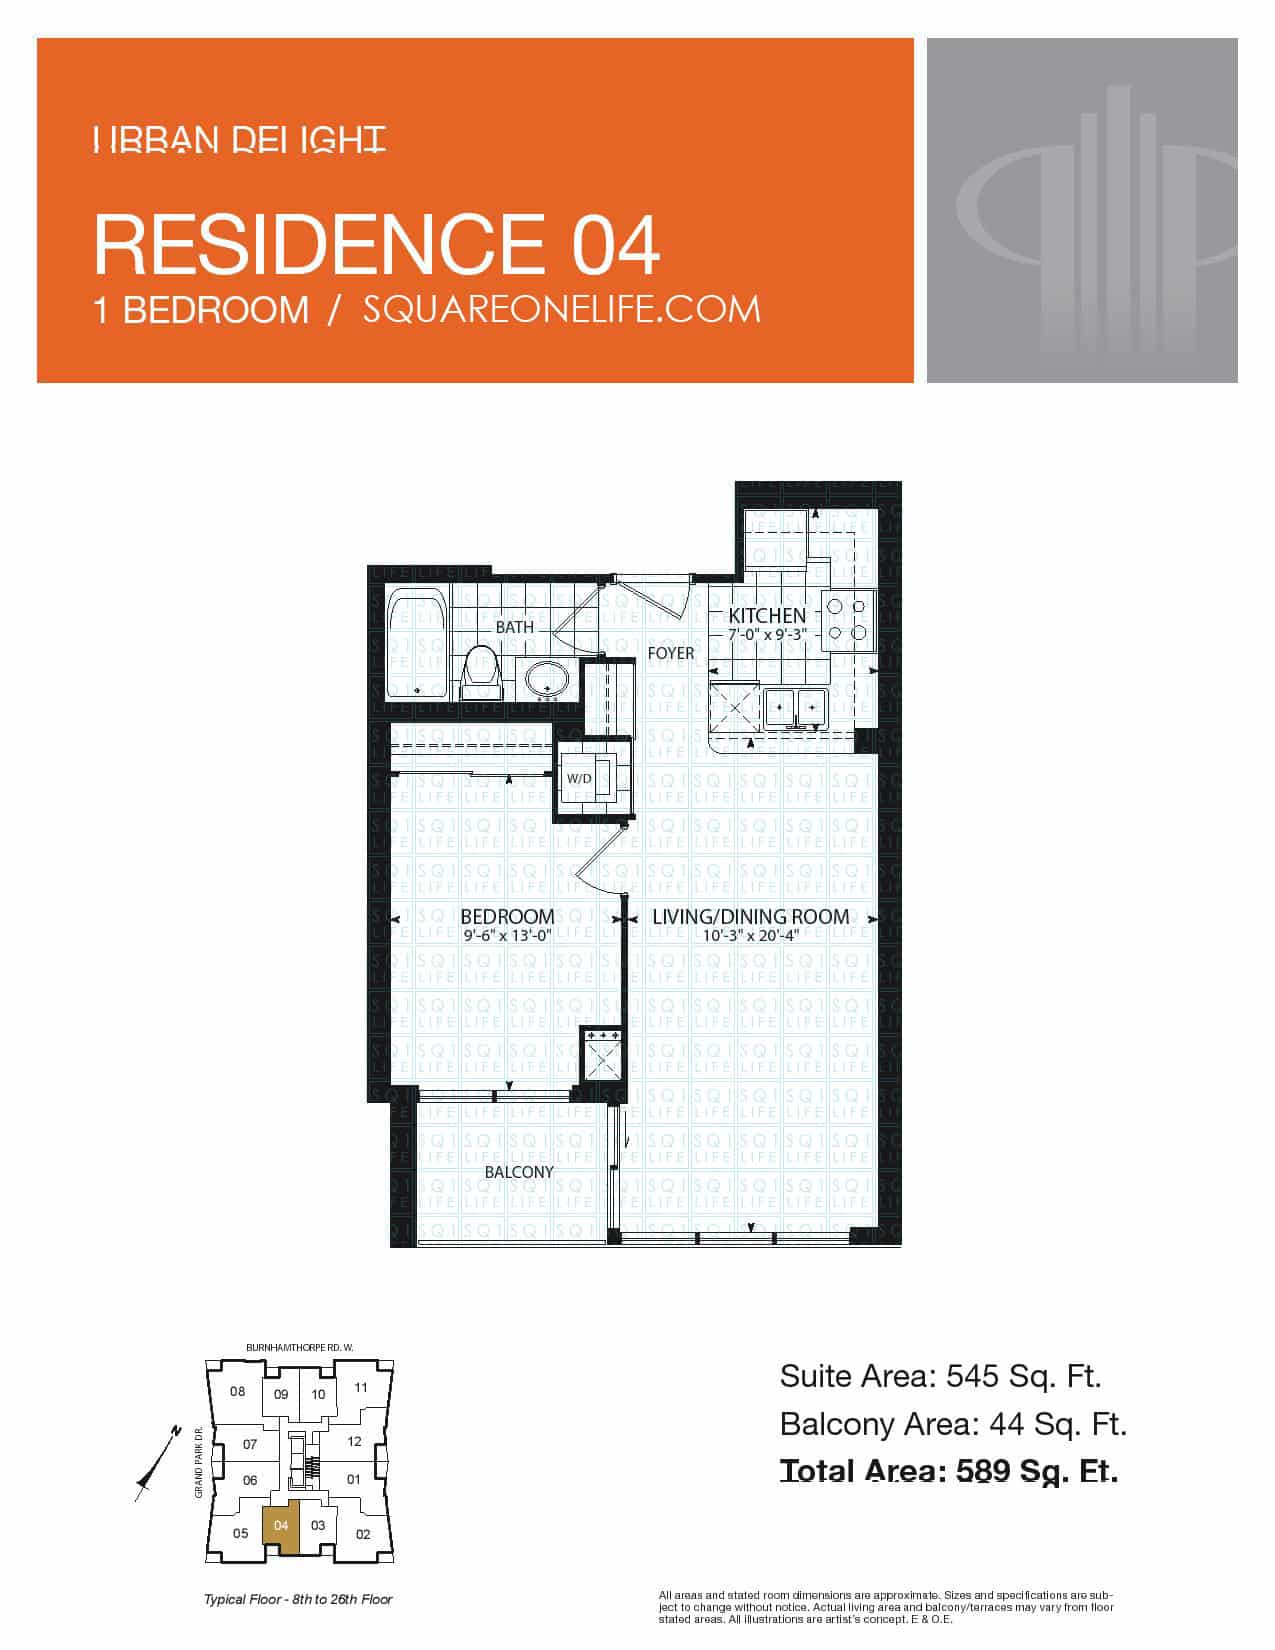 Grand-Park-Condo-3985-Grand-Park-Dr-Floorplan-Residence-4-1-Bed-1-Bath pinnacle grand park condo Pinnacle Grand Park Condo Grand Park Condo 3985 Grand Park Dr Floorplan Residence 4 1 Bed 1 Bath